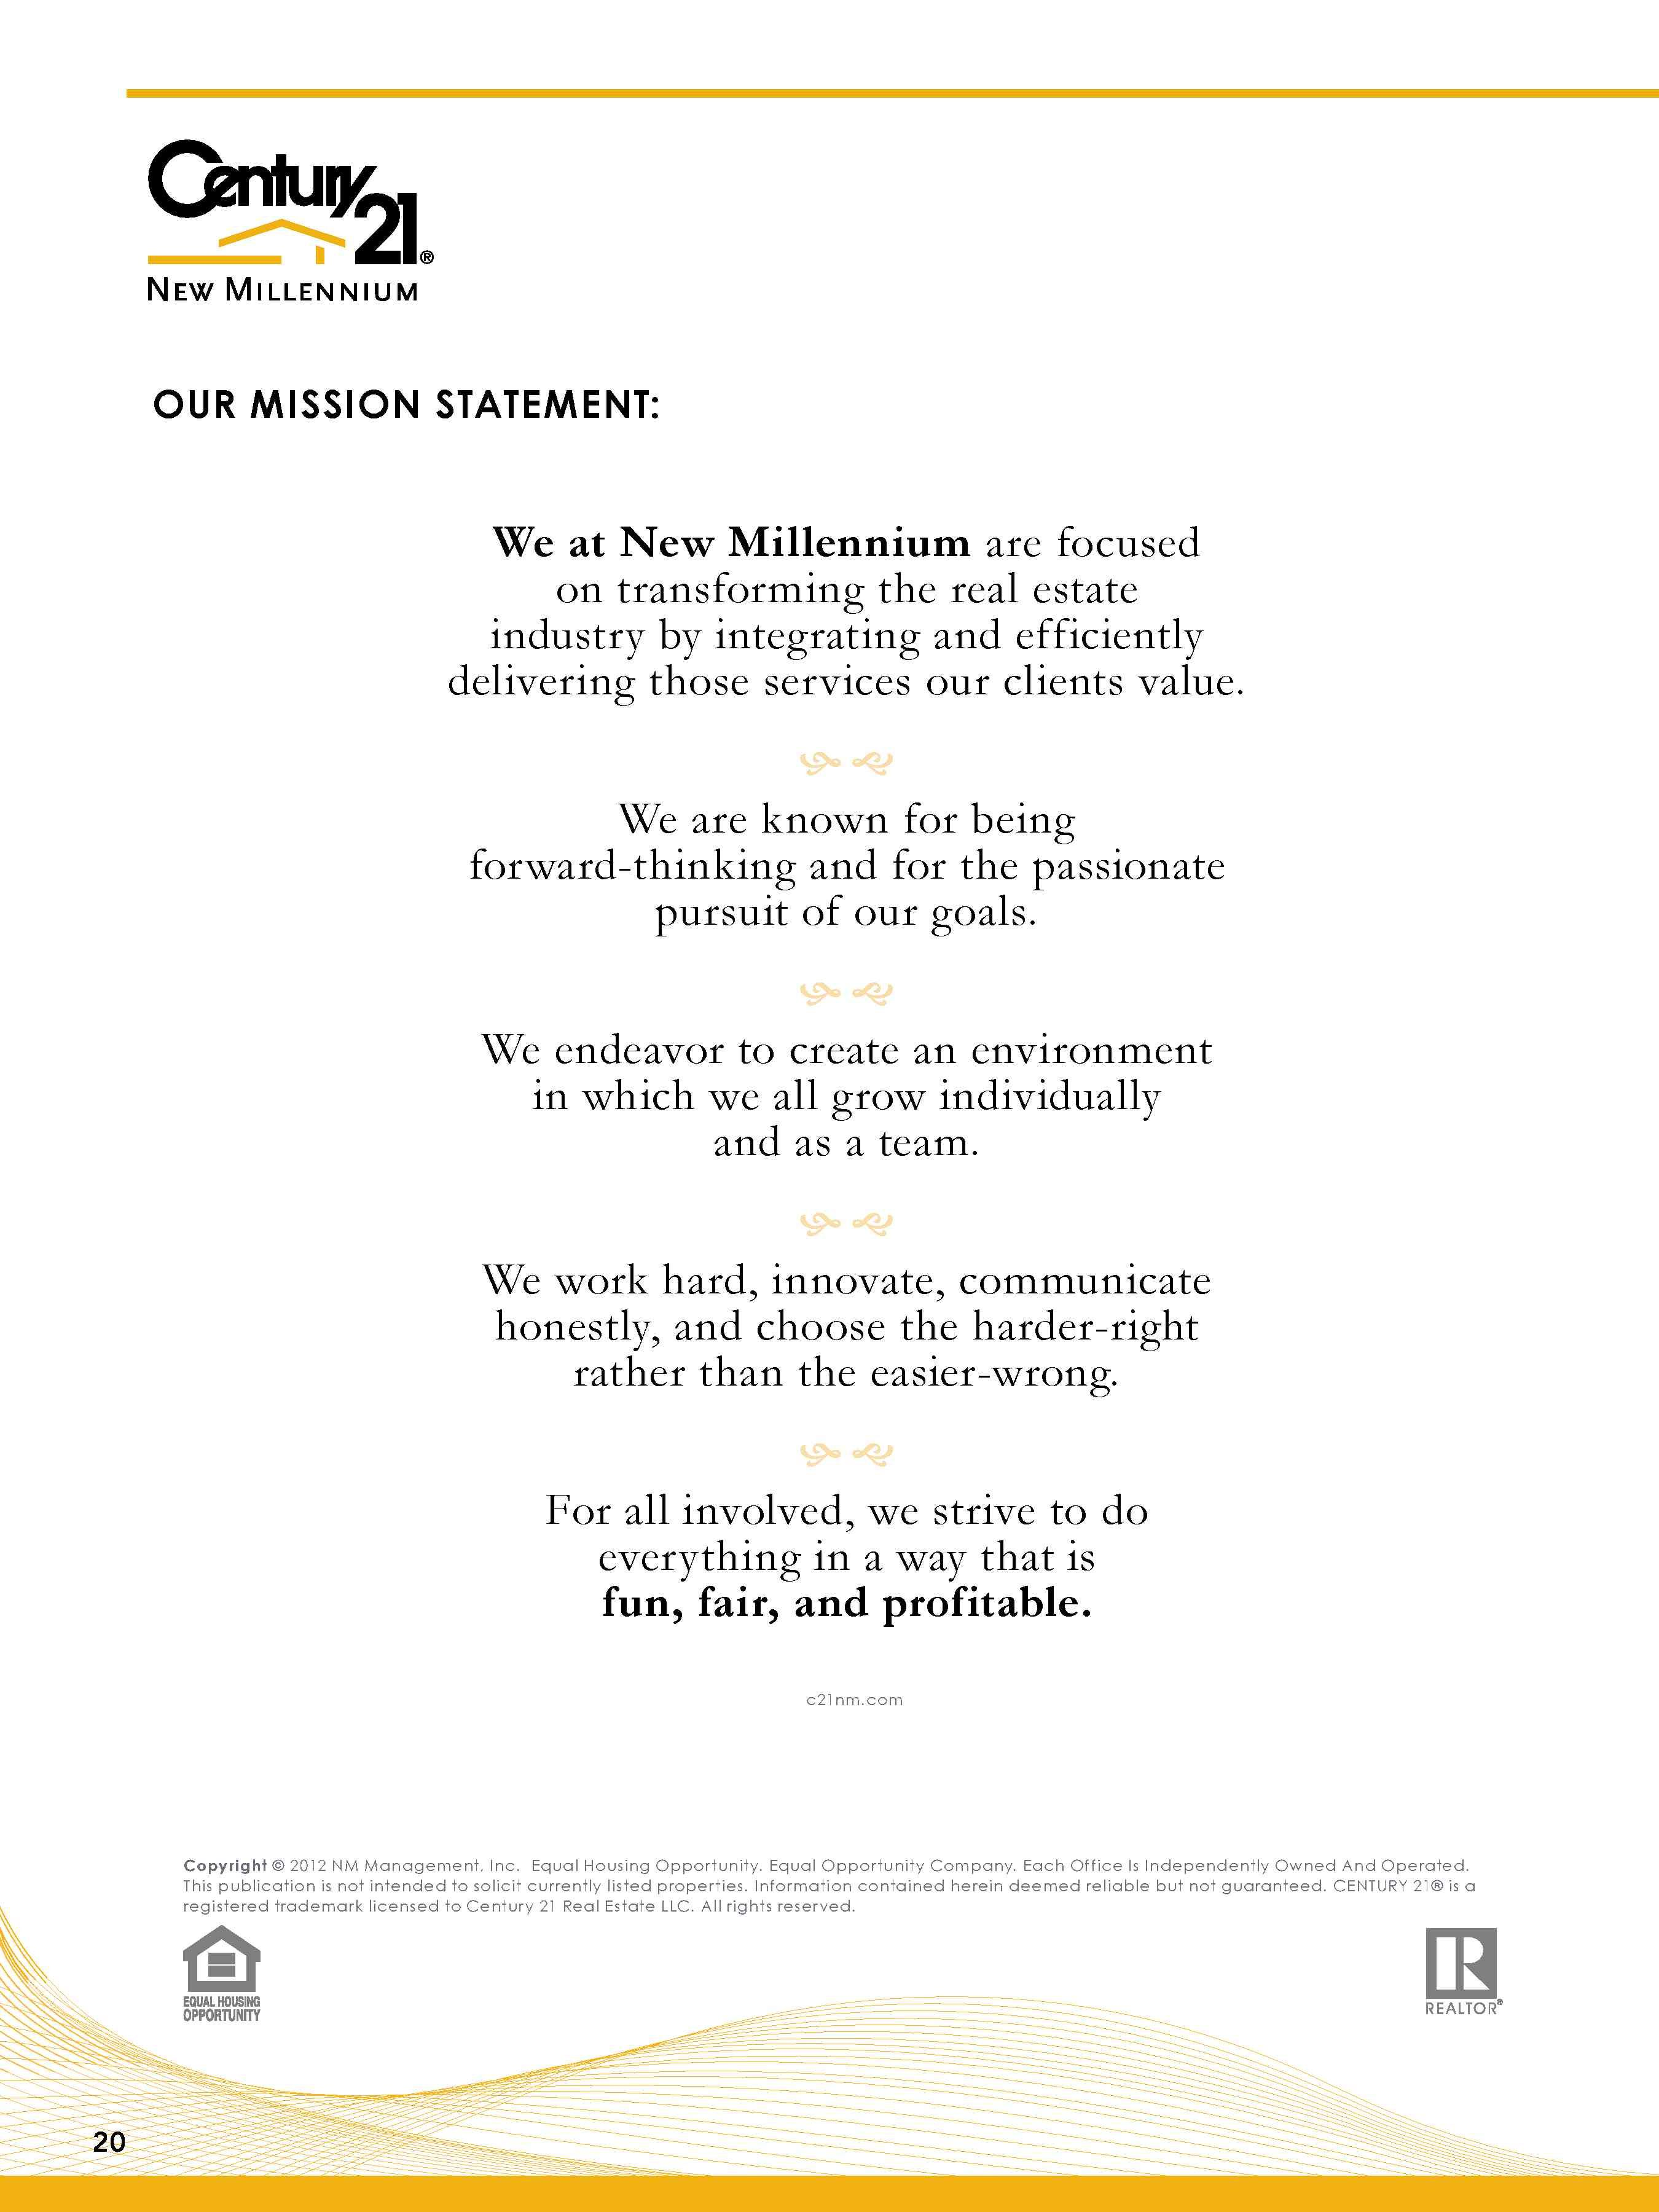 Listing Presentation Mission Statement Page   Century  New